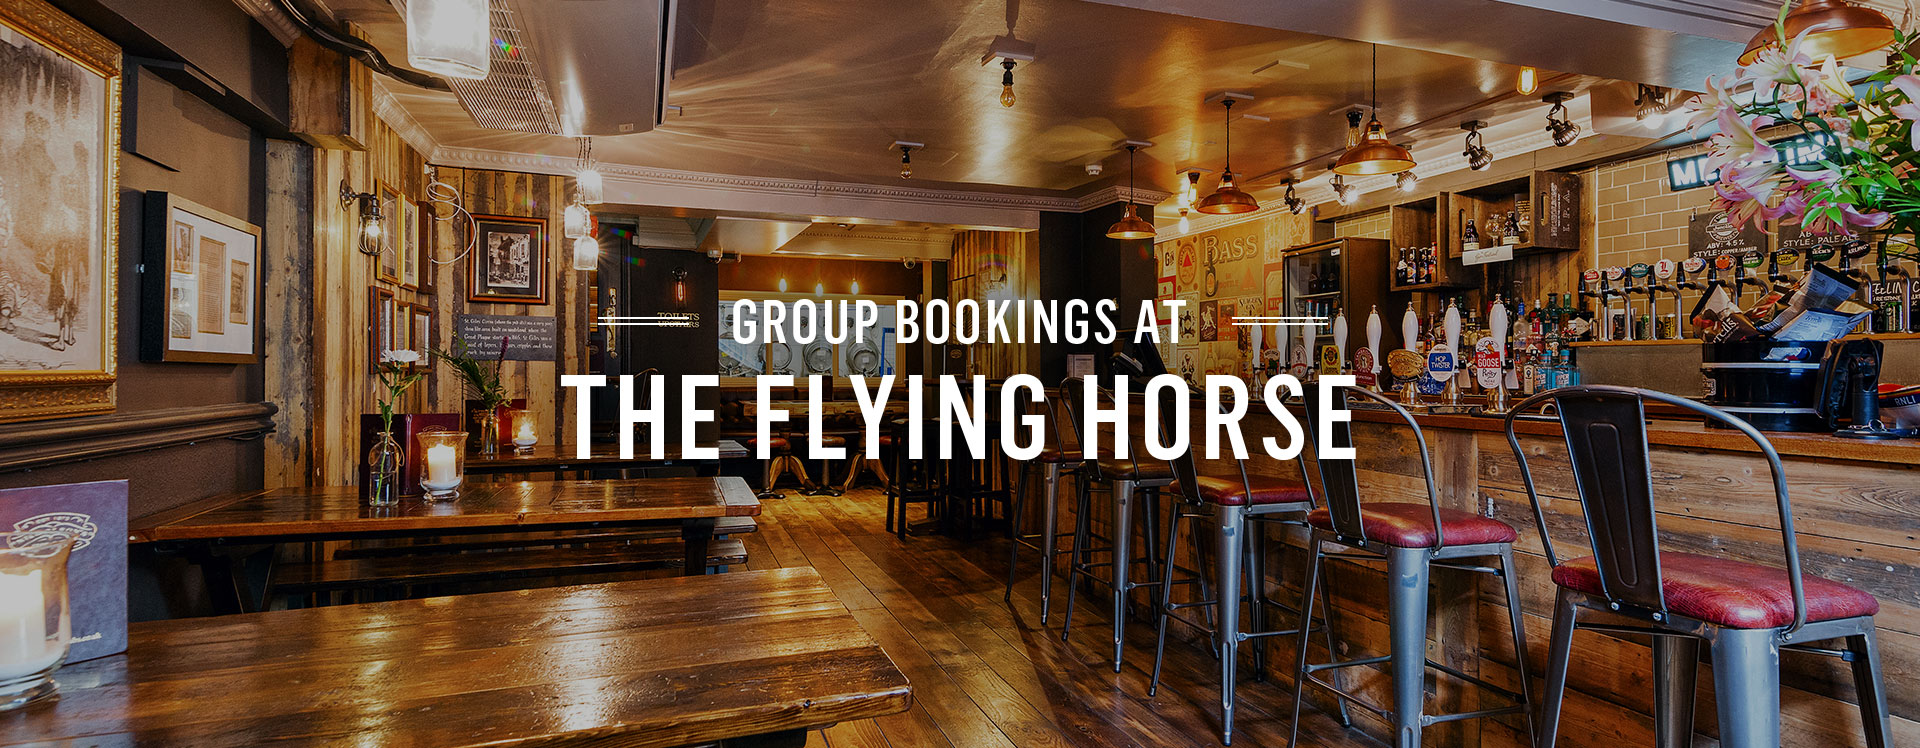 Group Bookings at Flying Horse